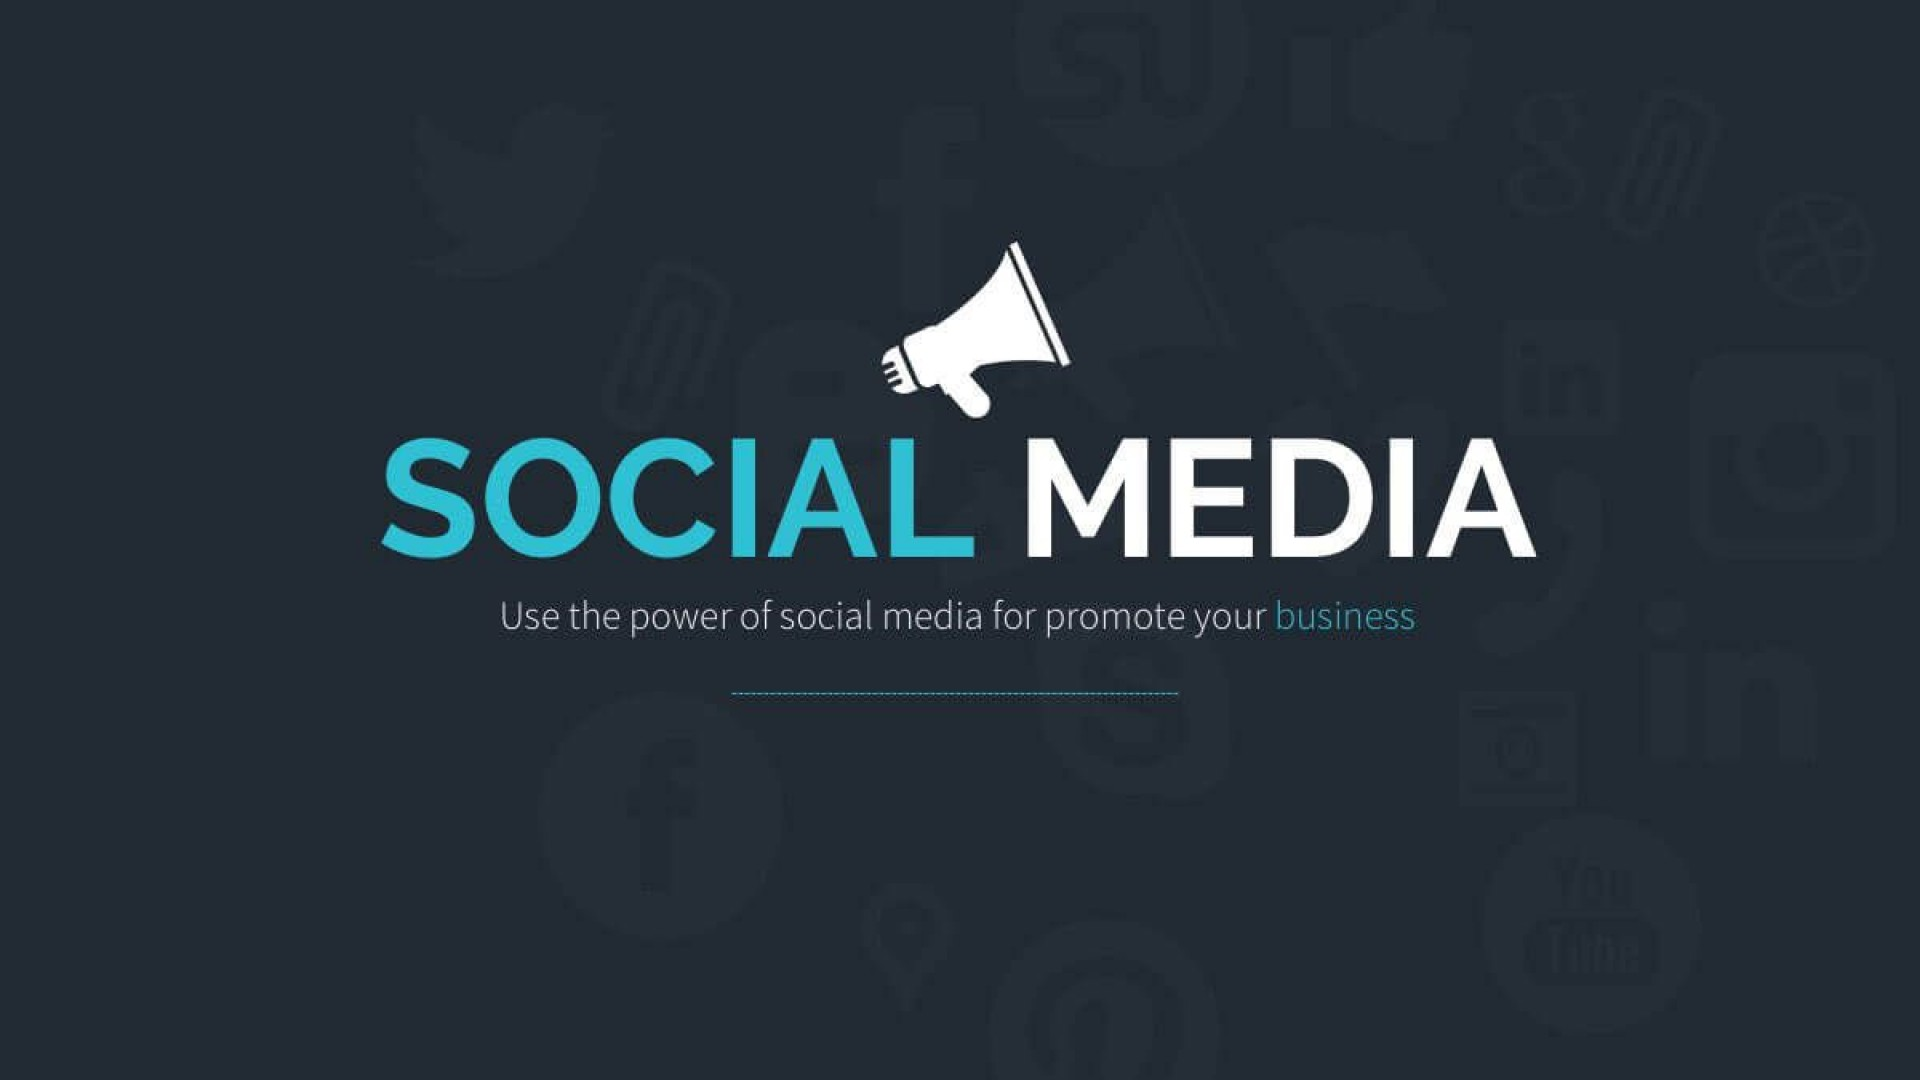 004 Singular Social Media Ppt Template Free High Definition  Download Report Powerpoint1920